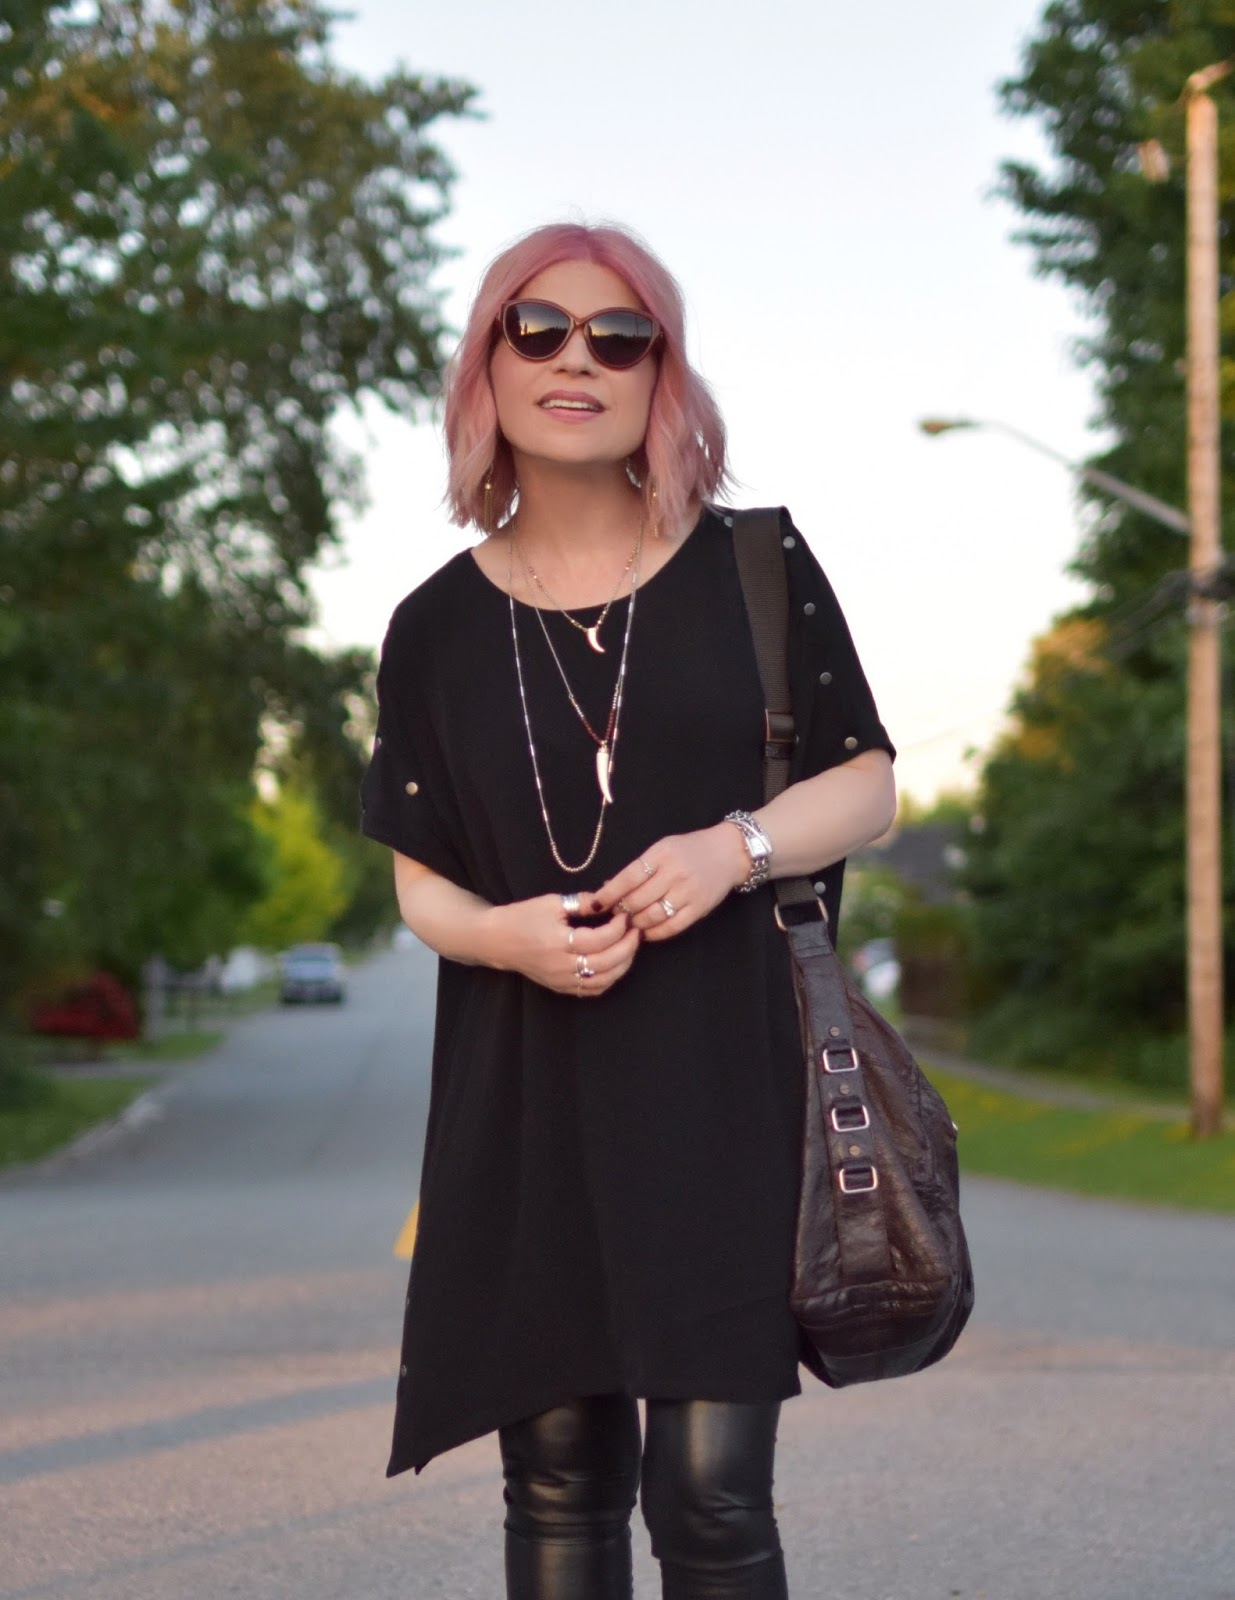 Monika Faulkner outfit inspiration - Aritzia tunic dress, vegan leather leggings, sunglasses, matt & nat bag